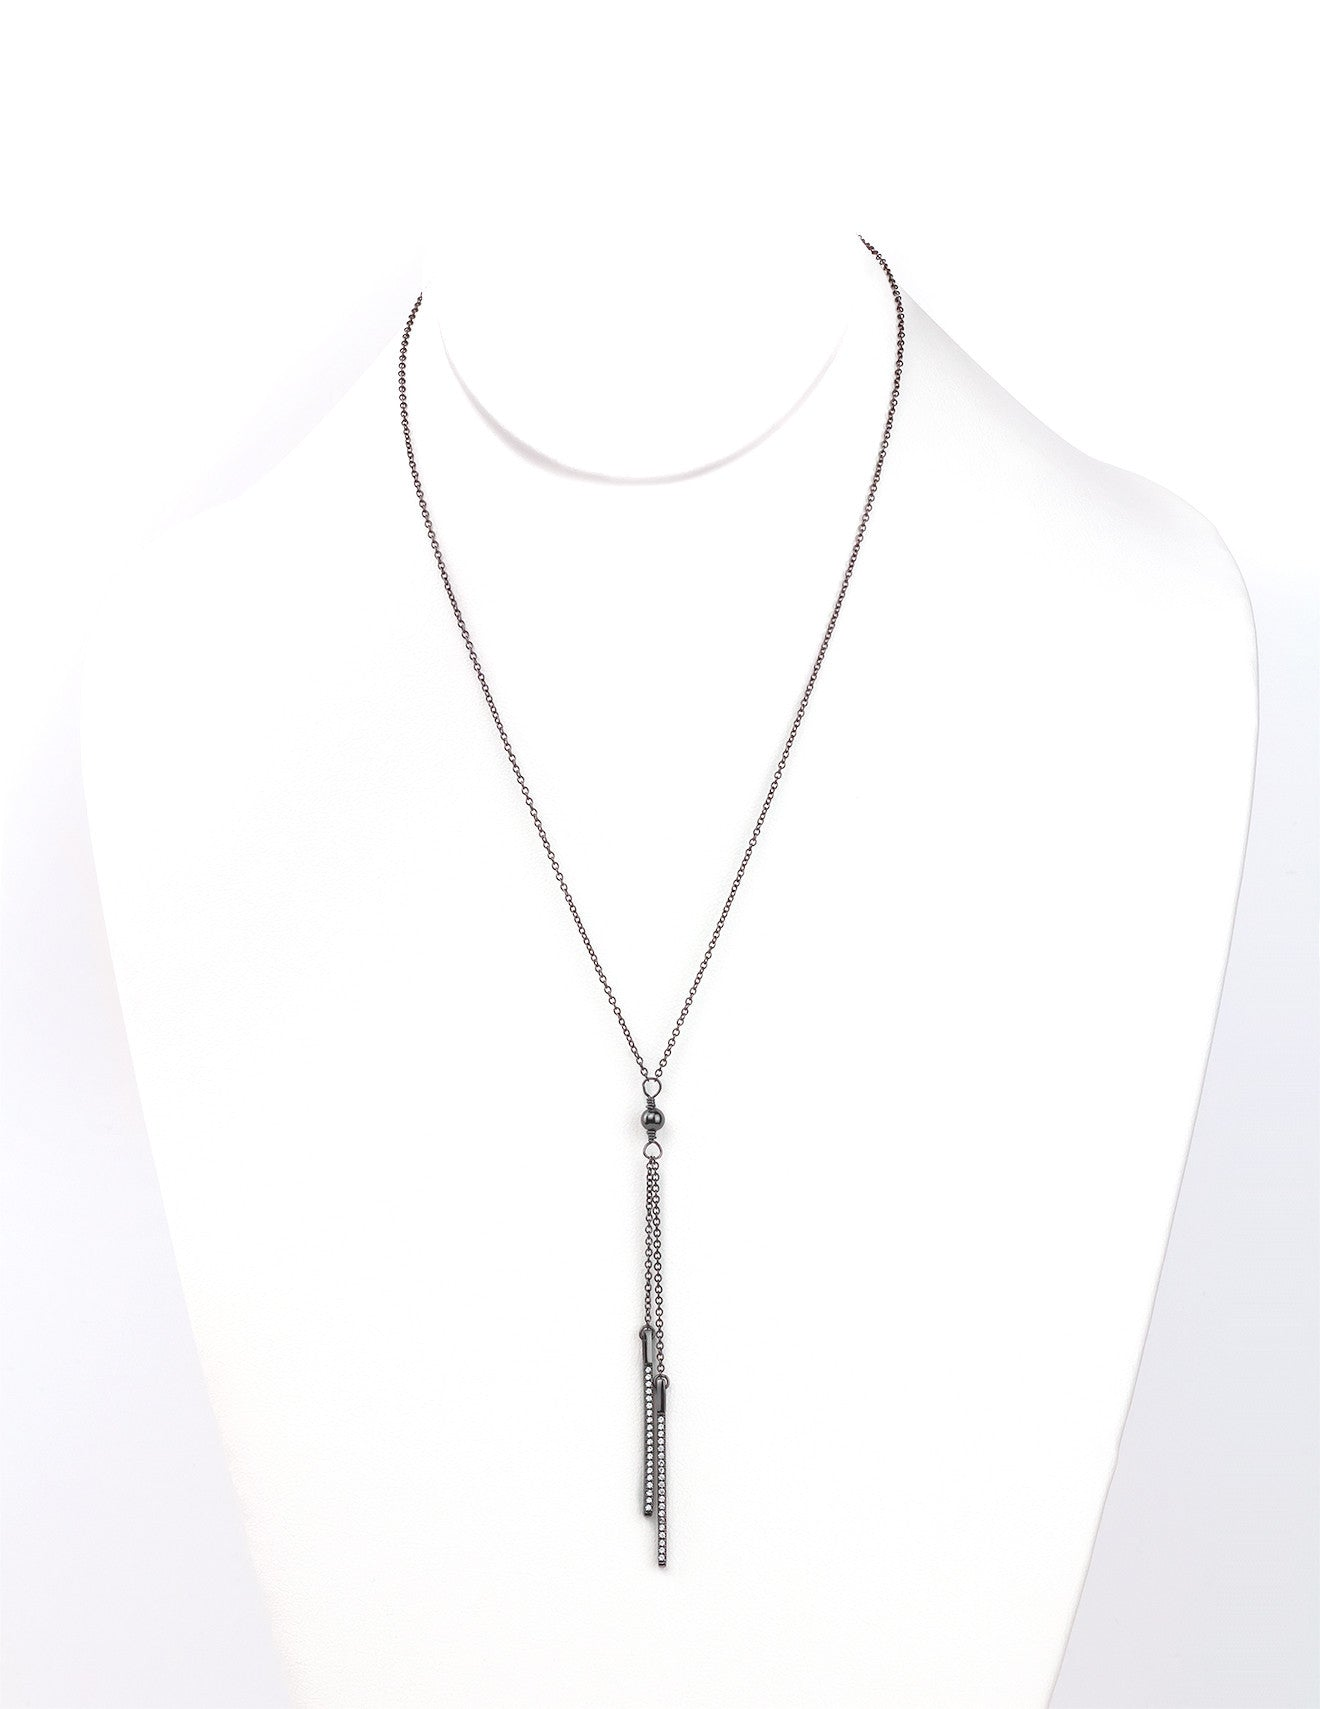 Black Tie Necklace - Silver 925